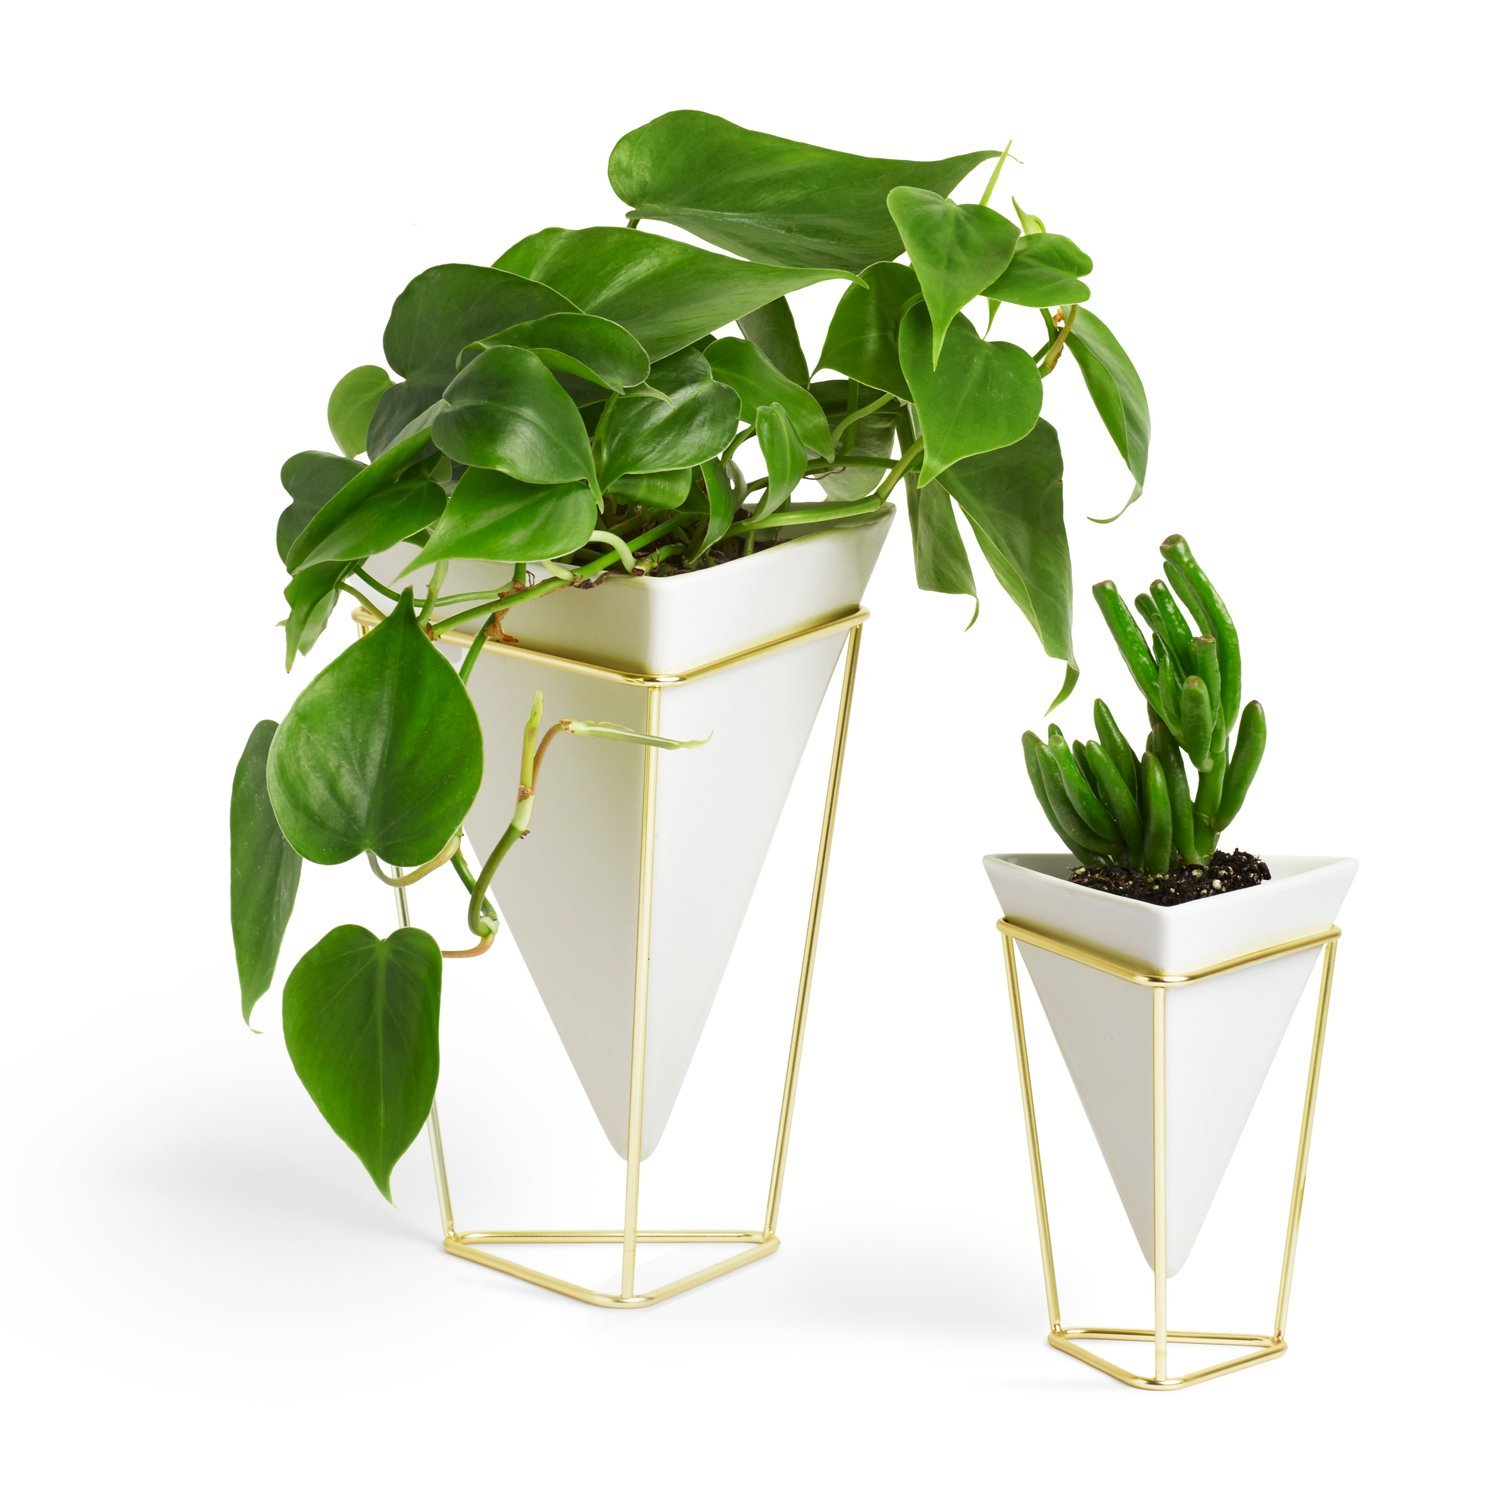 Umbra Indoor Plant Vase